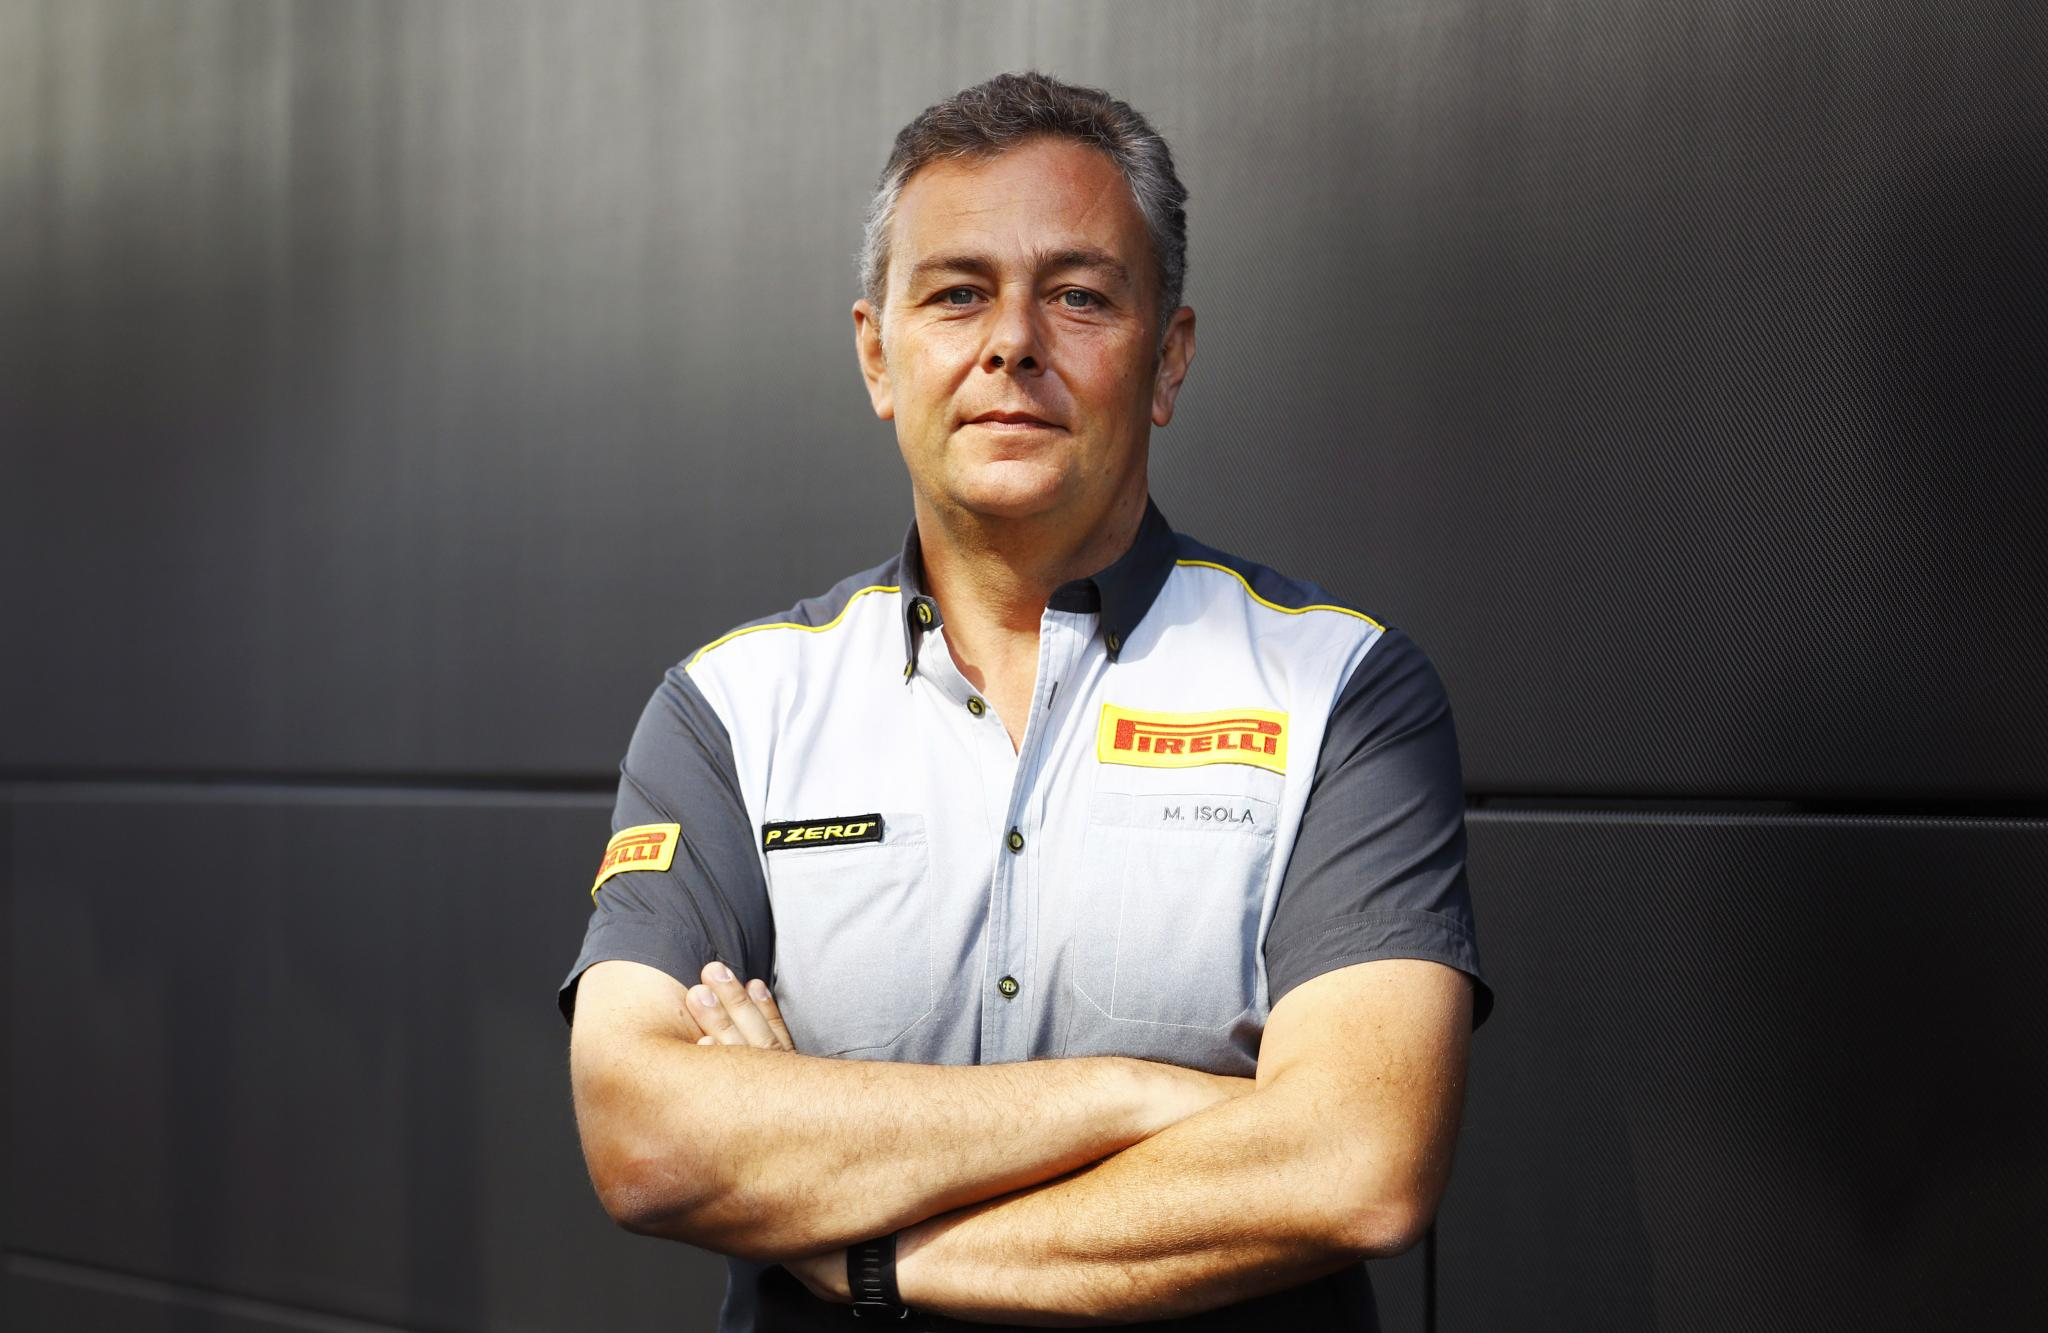 Pirelli head of F1 and car racing tests positive for Covid-19